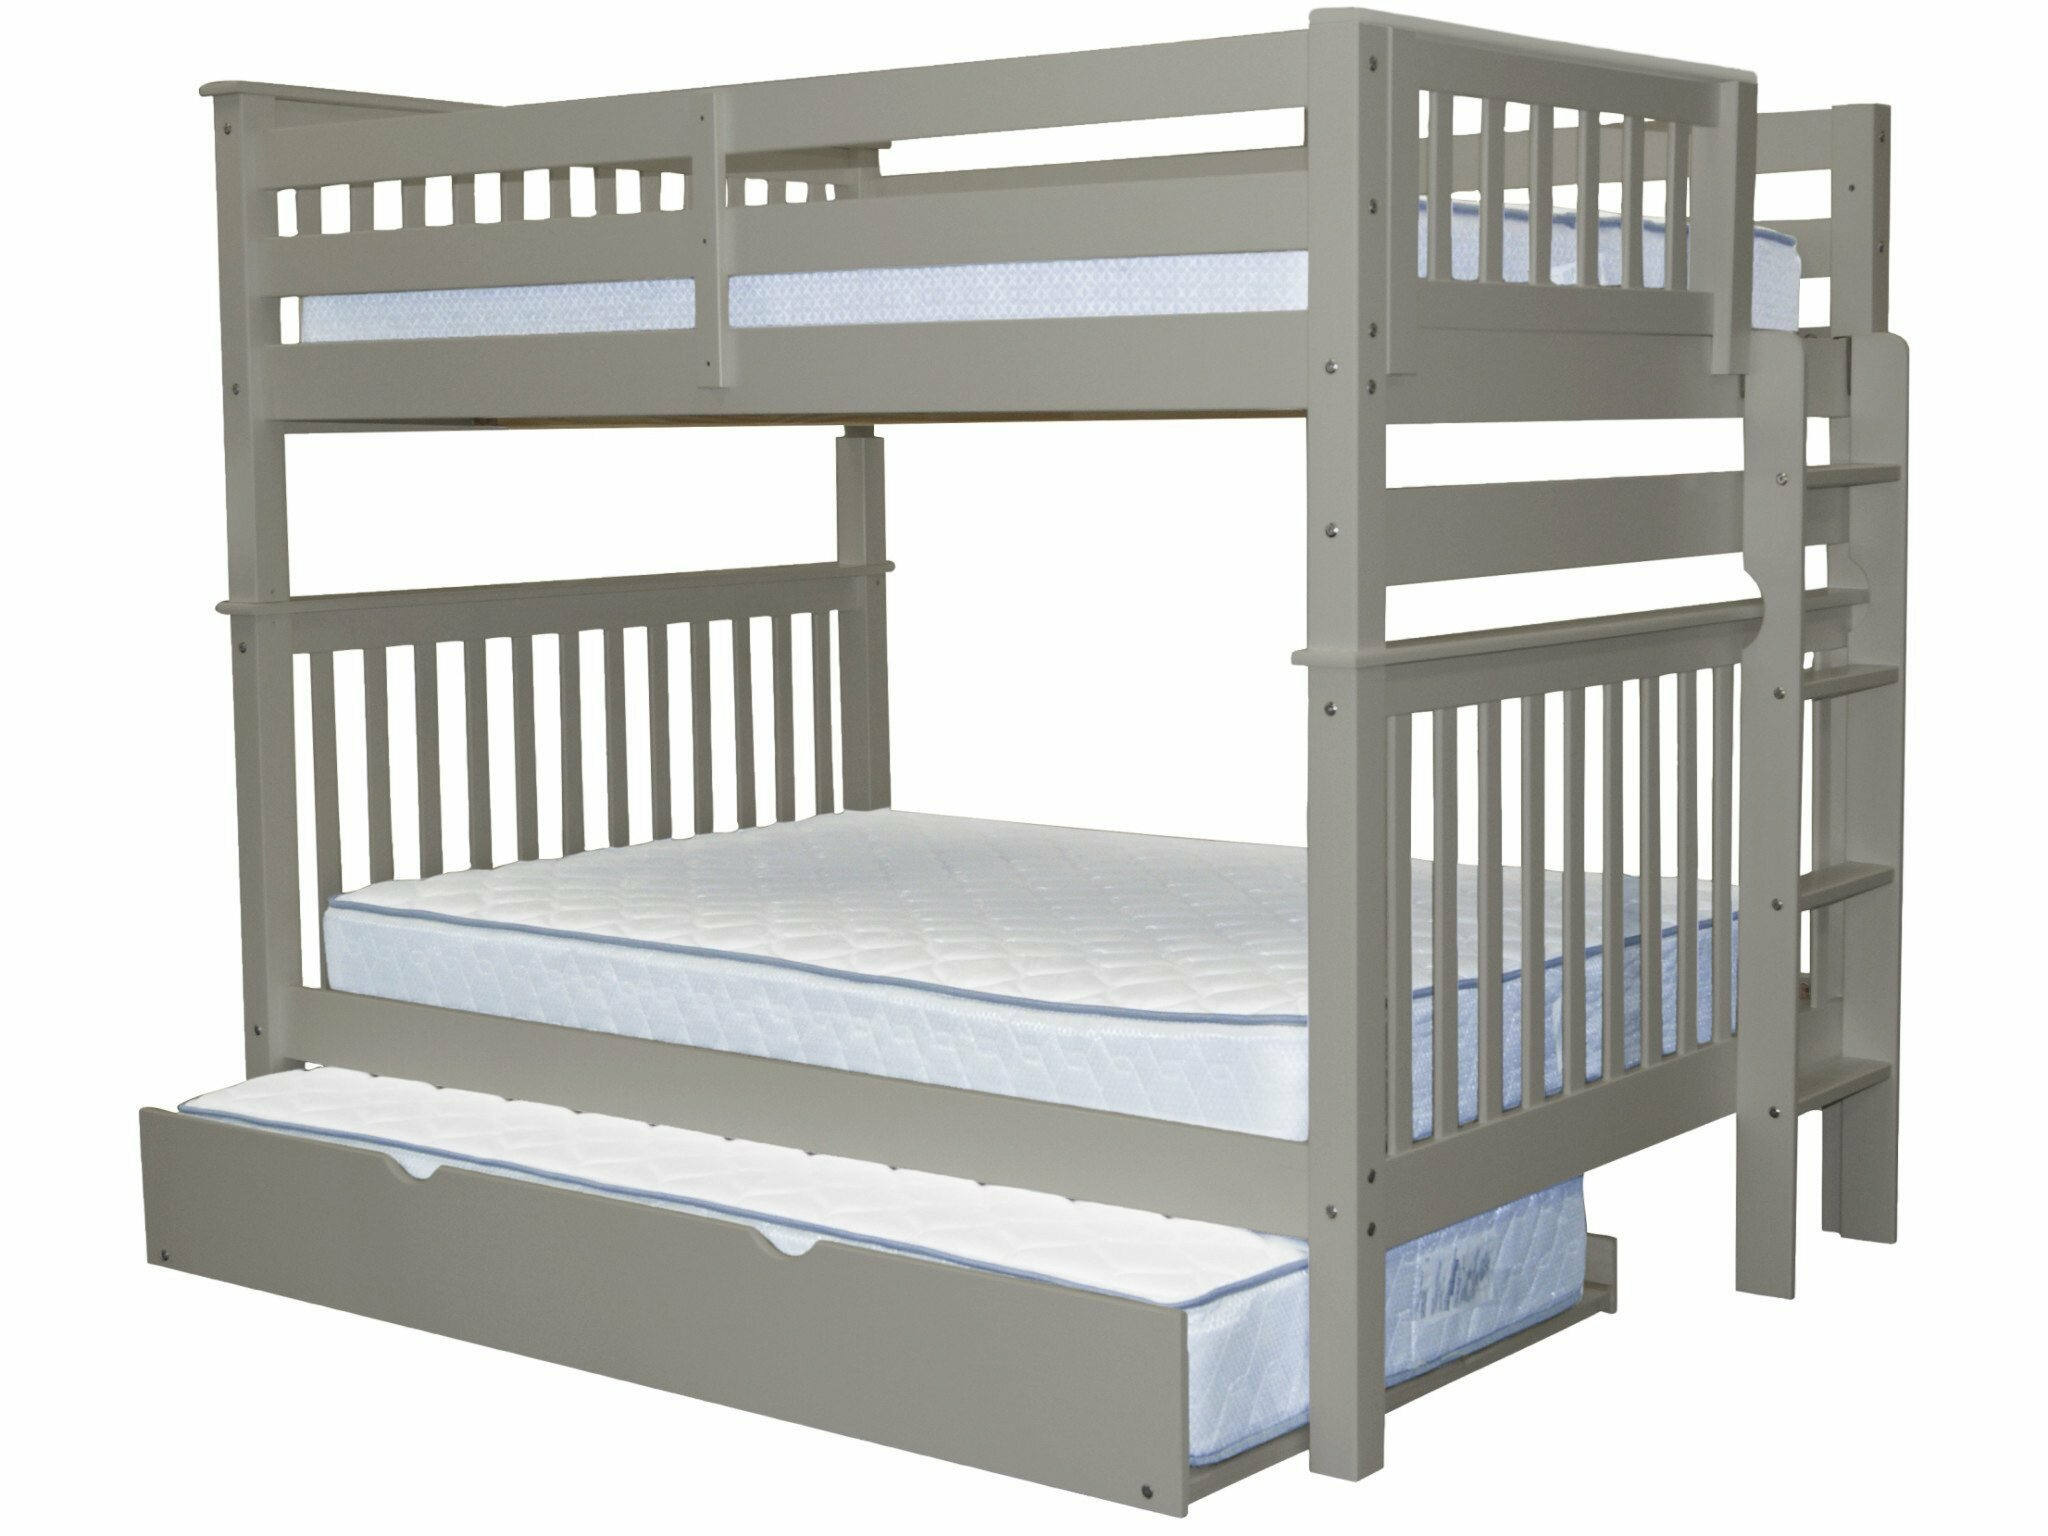 Harriet Bee Treva Full Over Full Bunk Bed With Trundle Reviews